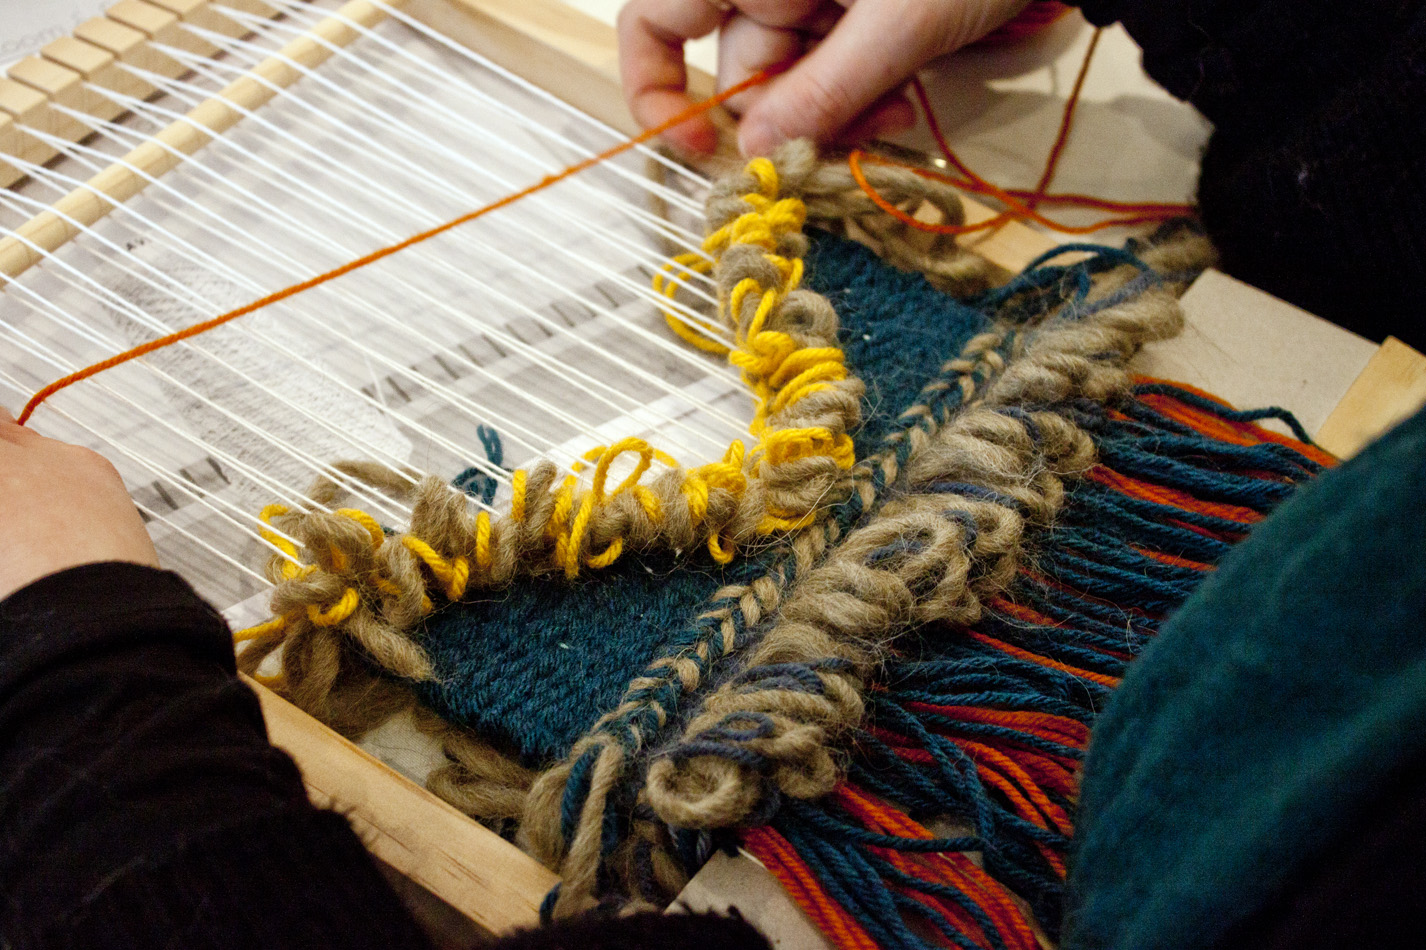 Loom Weaving Workshop - The Corner Store Gallery, Orange NSW - photograph by Madeline Young